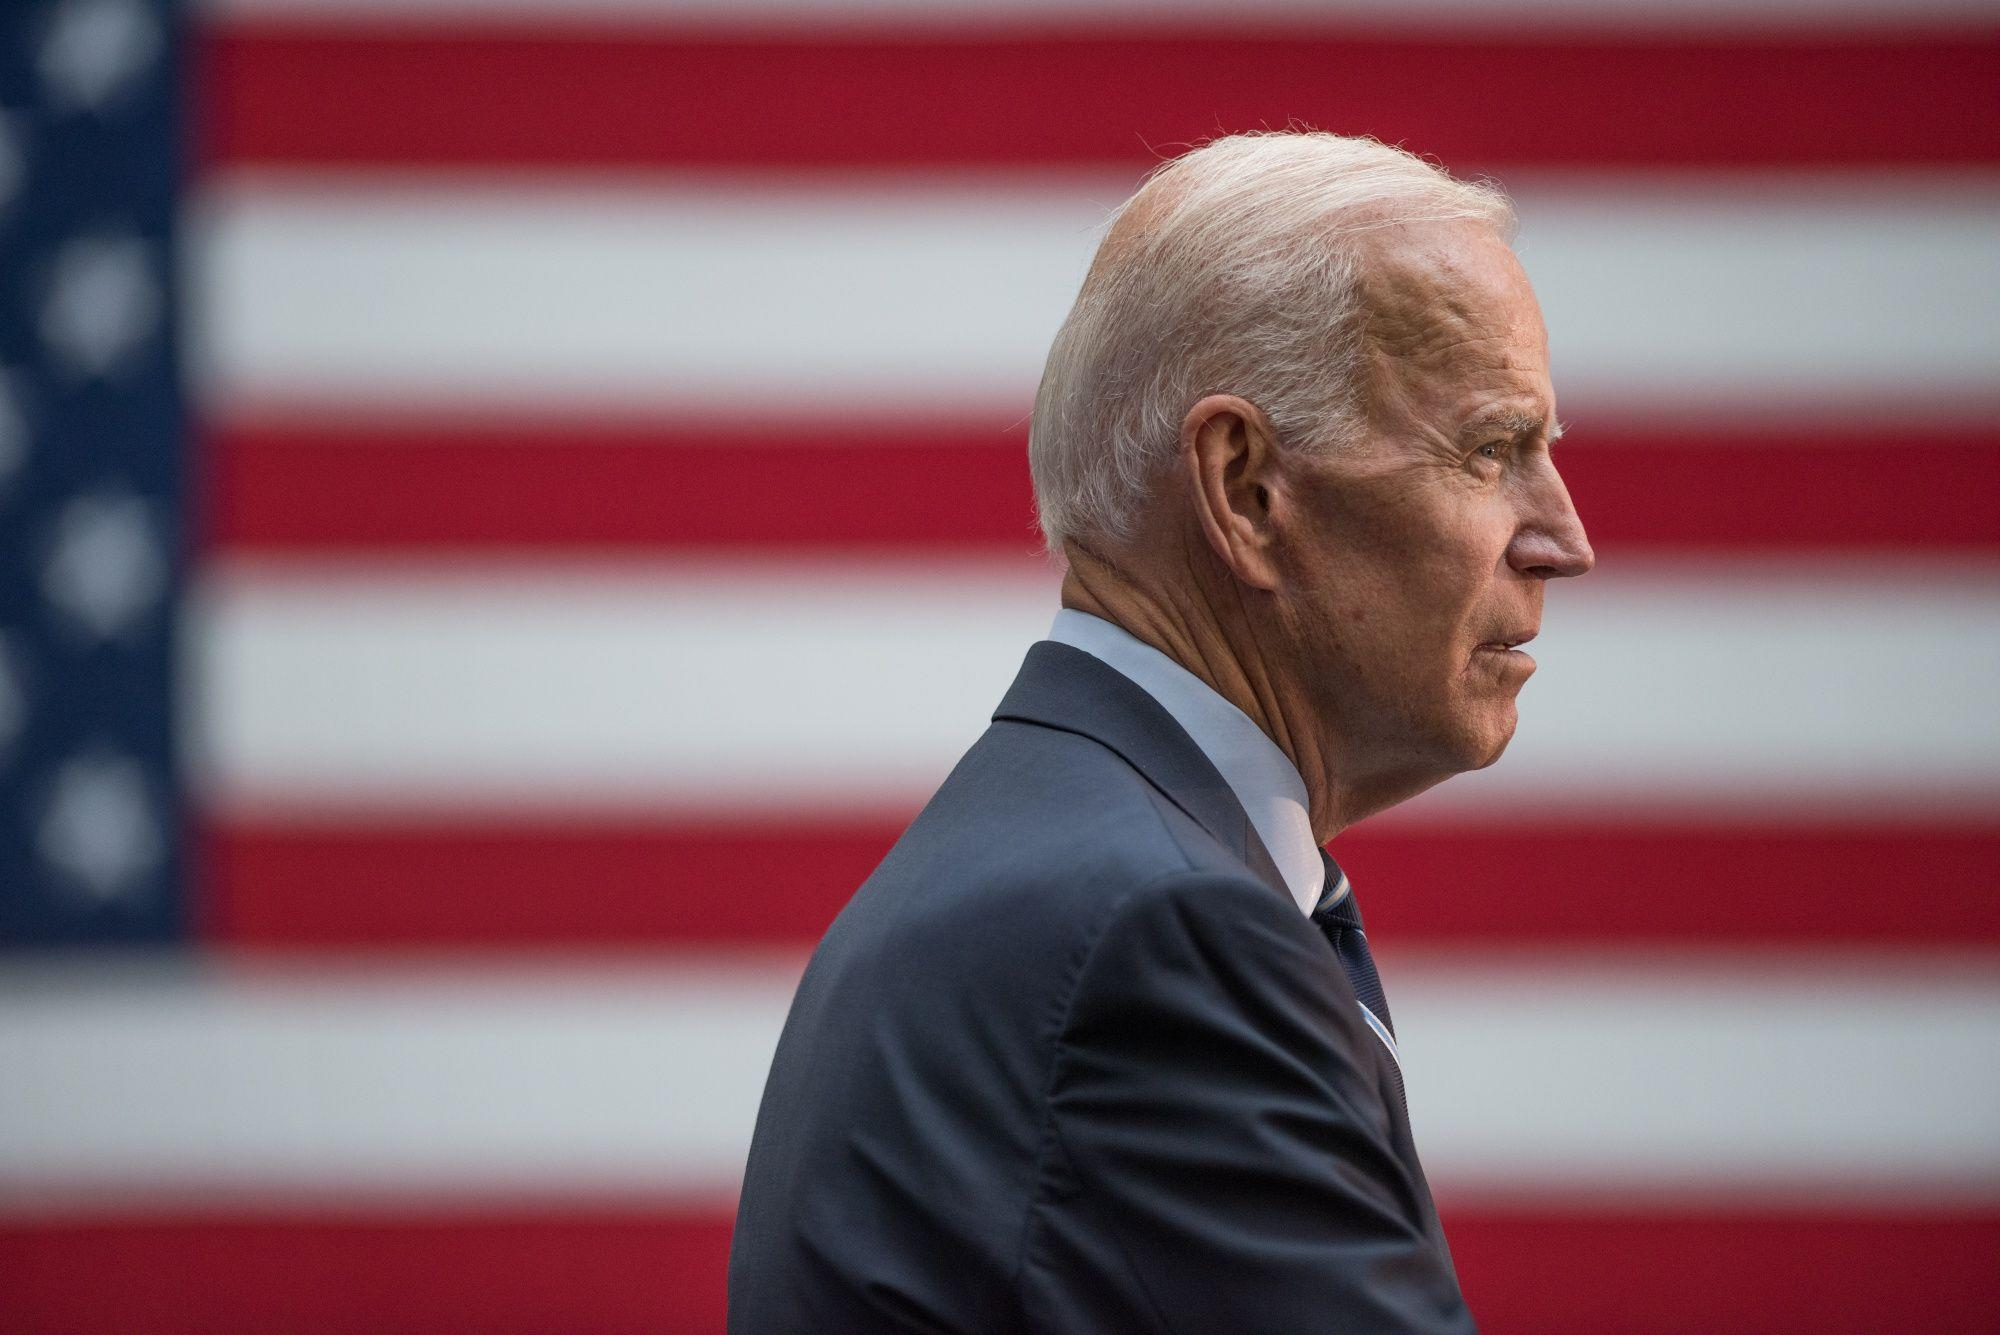 Biden Fumbles That Poor Kids Are 'Just As Bright' As White Kids